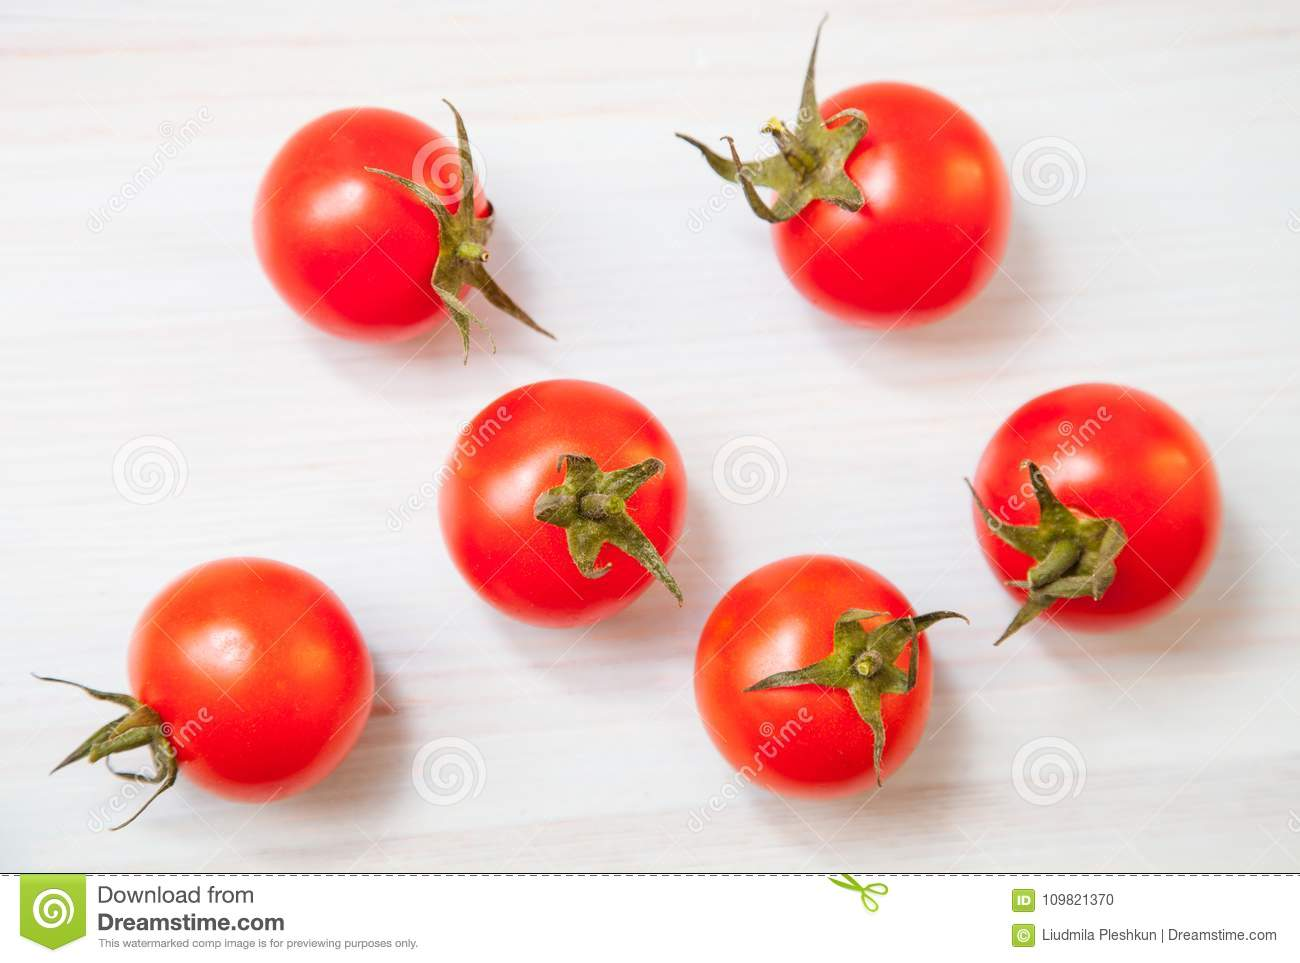 Palatable fresh tomatos